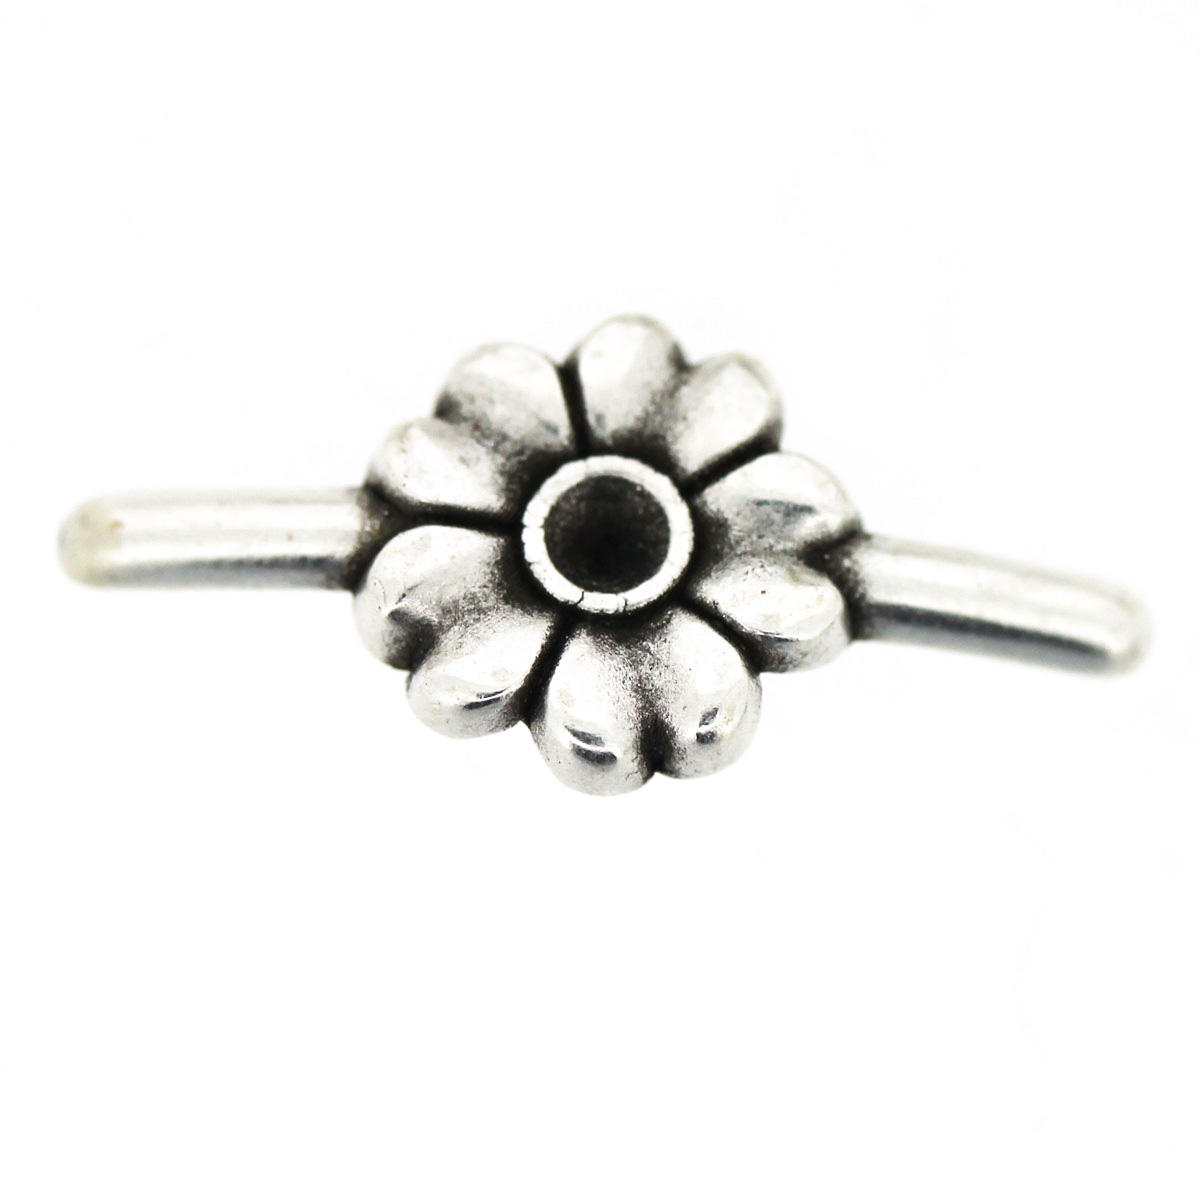 Daisy Flower PVC Connector Charm - 3mm